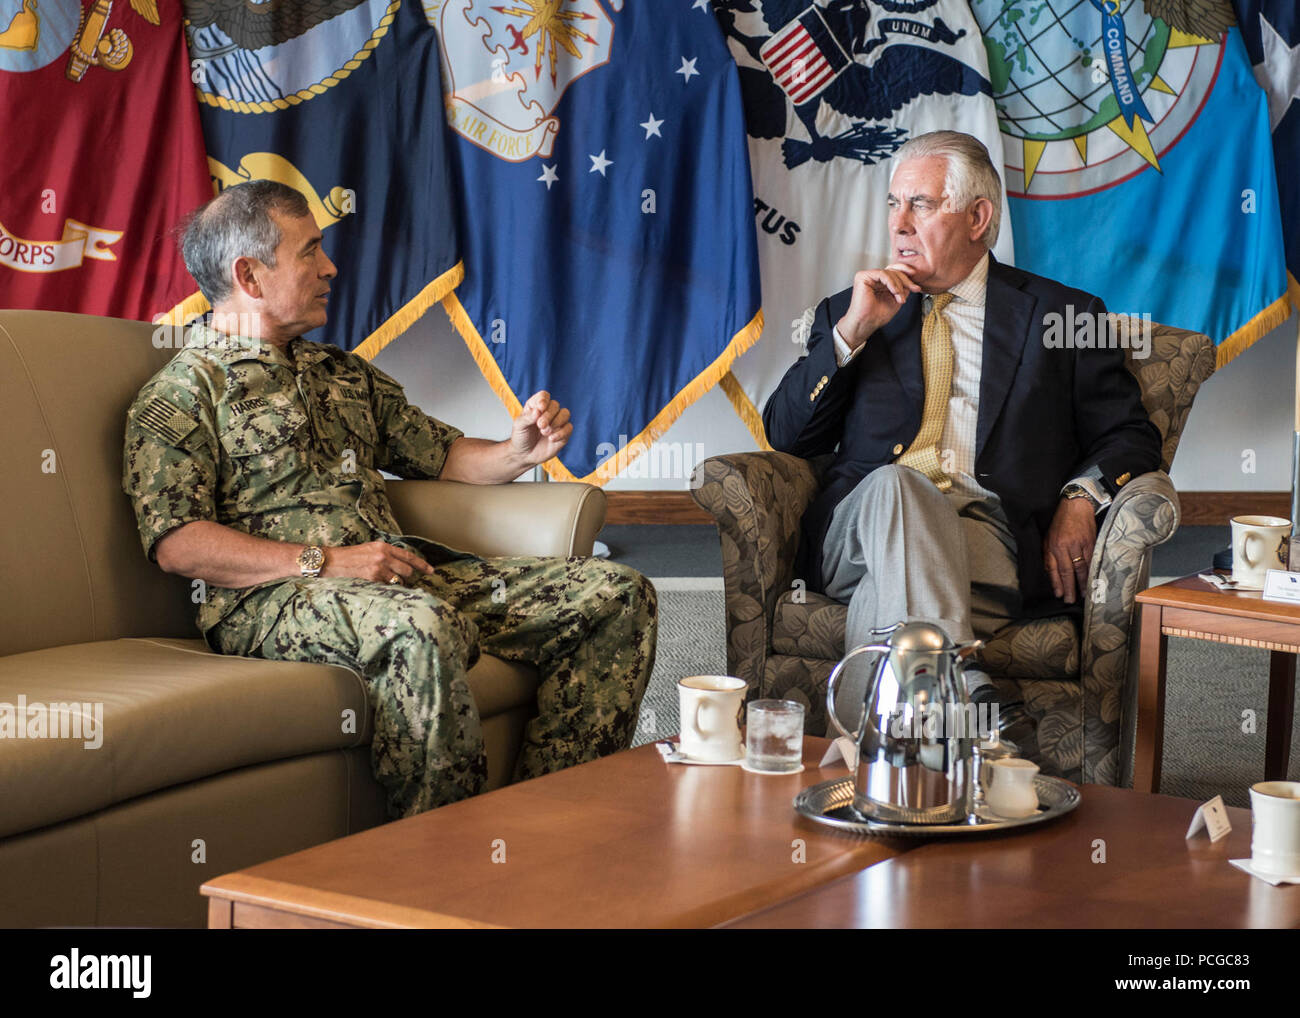 CAMP H.M. SMITH, Hawaii (August 4, 2017)— Adm. Harry Harris, Commander of U.S. Pacific Command (PACOM), has a conversation with U.S. Secretary of State Rex Tillerson at PACOM Headquarters. Secretary Tillerson is traveling to Manila, Bangkok, and Kuala Lumpur to meet with his counterparts and discuss a range of issues including the denuclearization of the Korean Peninsula, maritime security, and counterterrorism.  Secretary Tillerson's travel reaffirms the Administration's commitment to further broaden and enhance U.S. economic and security interests in the Indo-Asia-Pacific region. Stock Photo